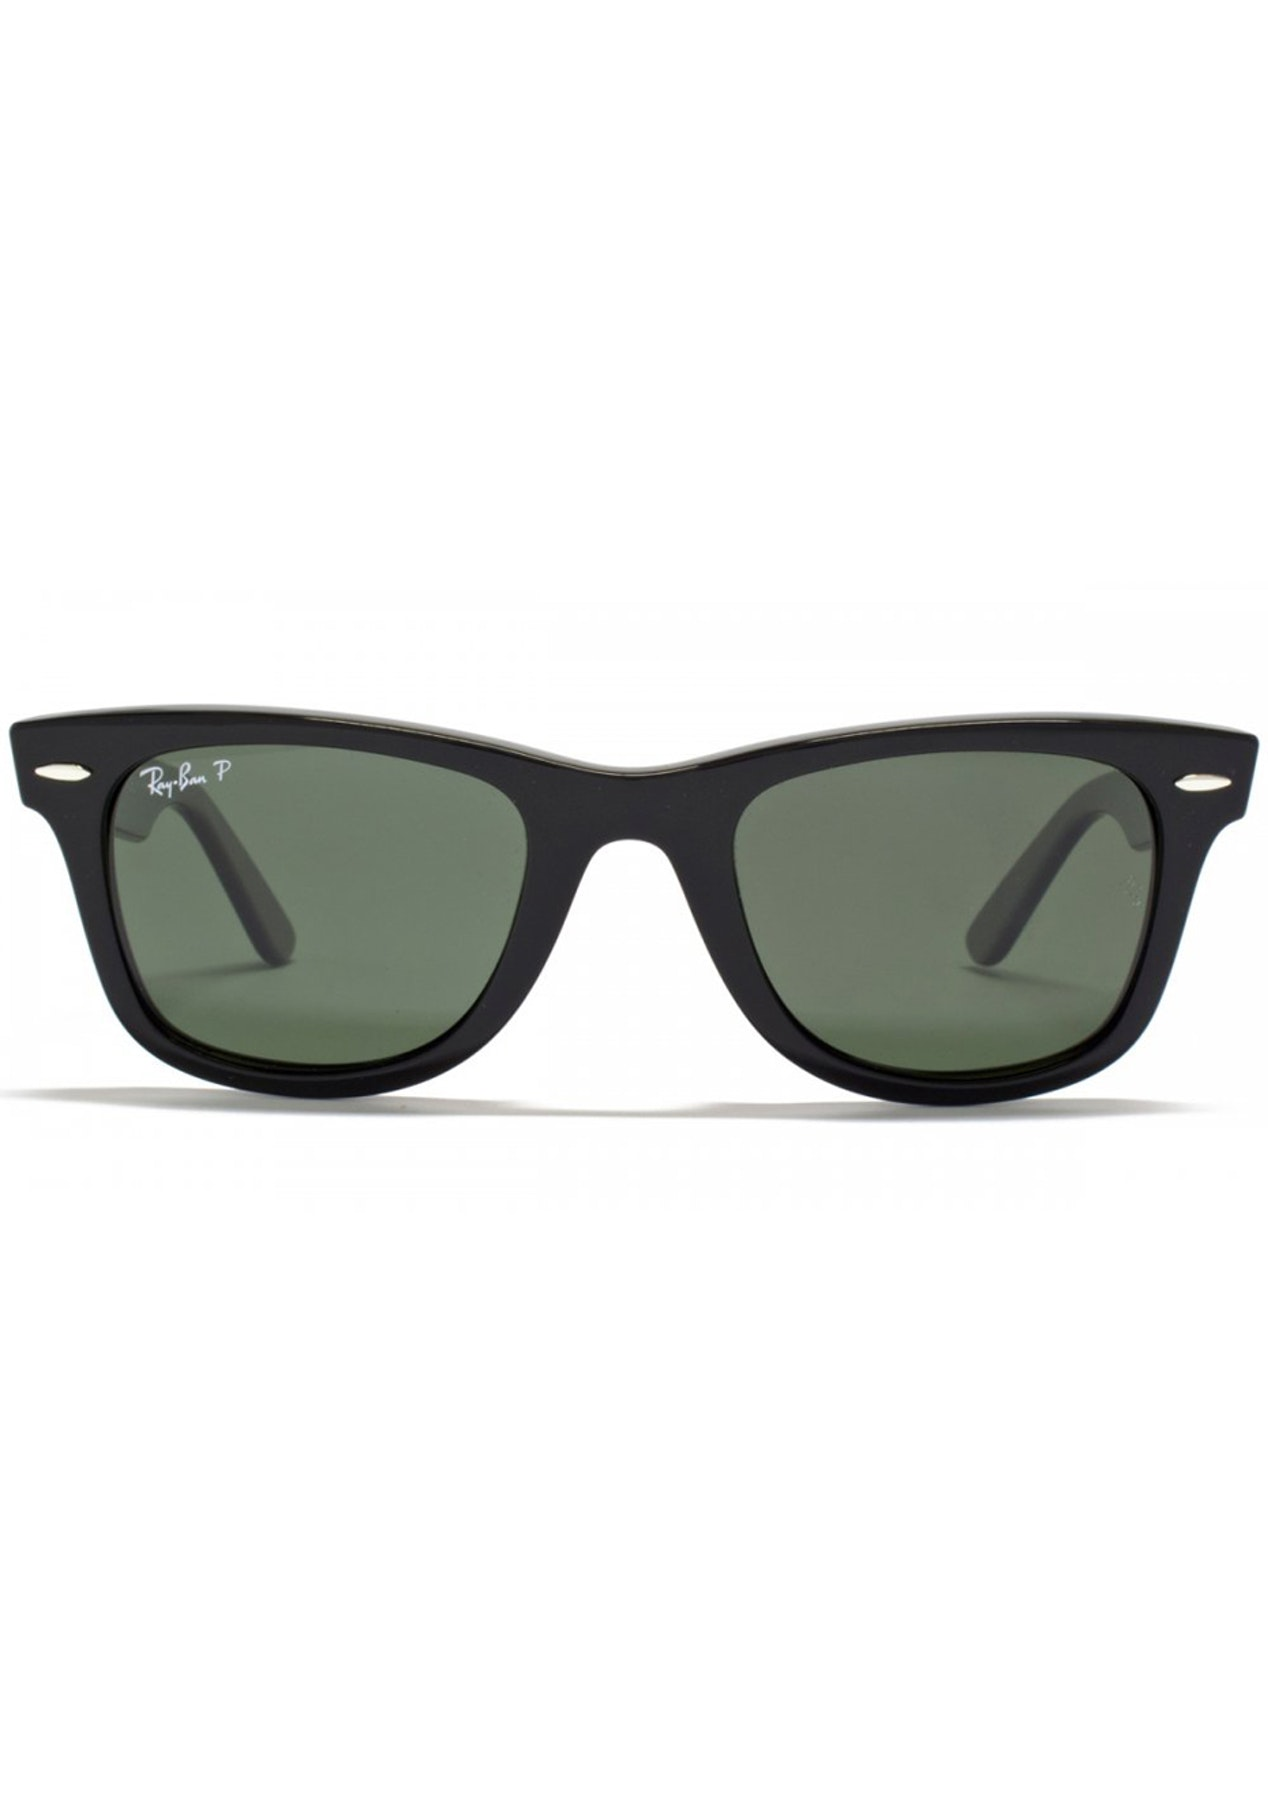 bfefc36943 Ray-Ban - RB2140 901 58 54 - Original Wayfarer Classic Polarized - 24 Hours  Ray-Bans - Onceit